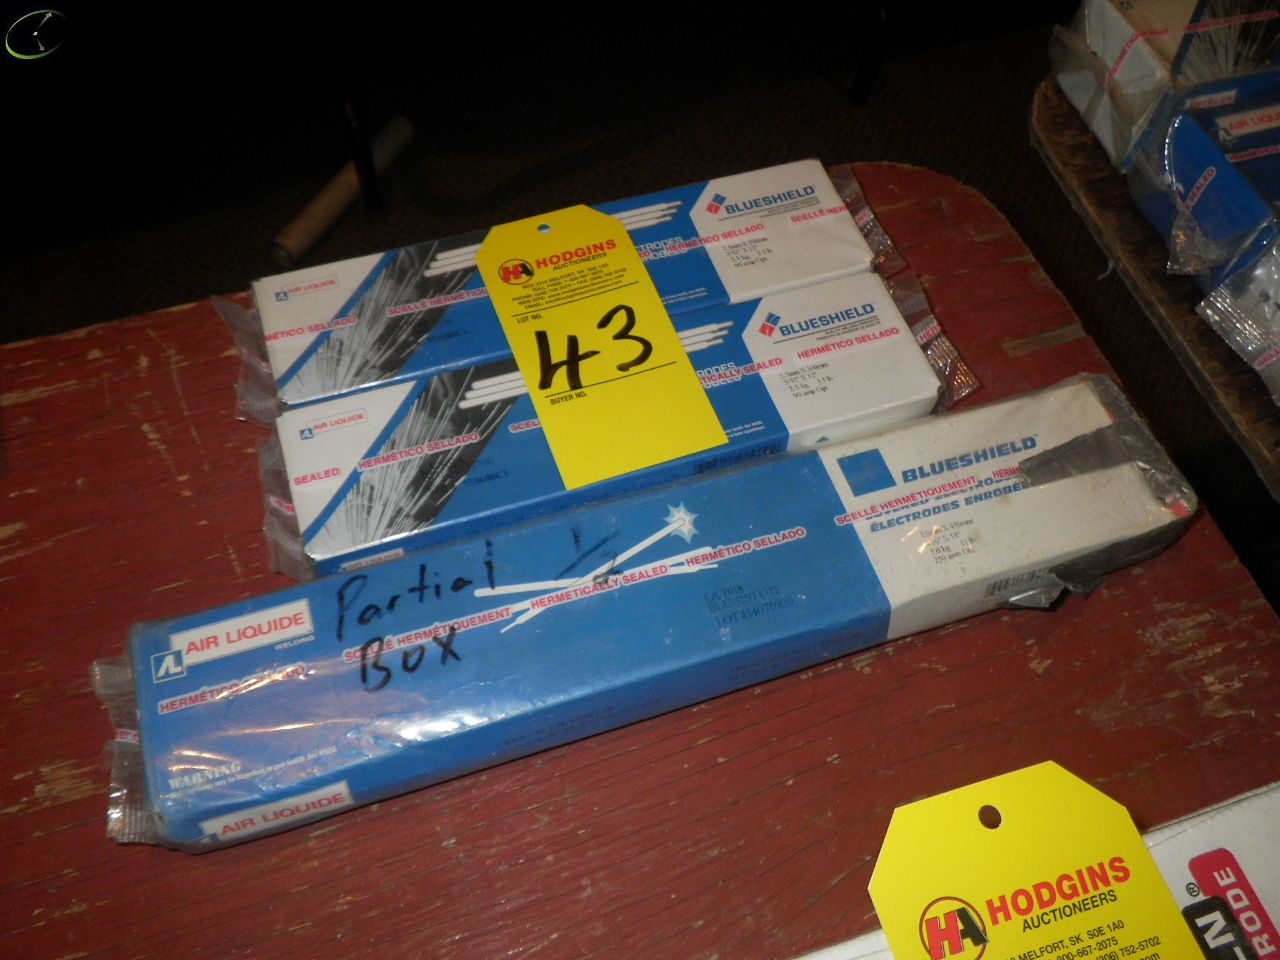 Lot 43 - TWO Boxes Of BLUESHIELD 3/32X12'' 7018 Welding Rods, Partial Box Of 3/16''x18'' 7018 Welding Rod.